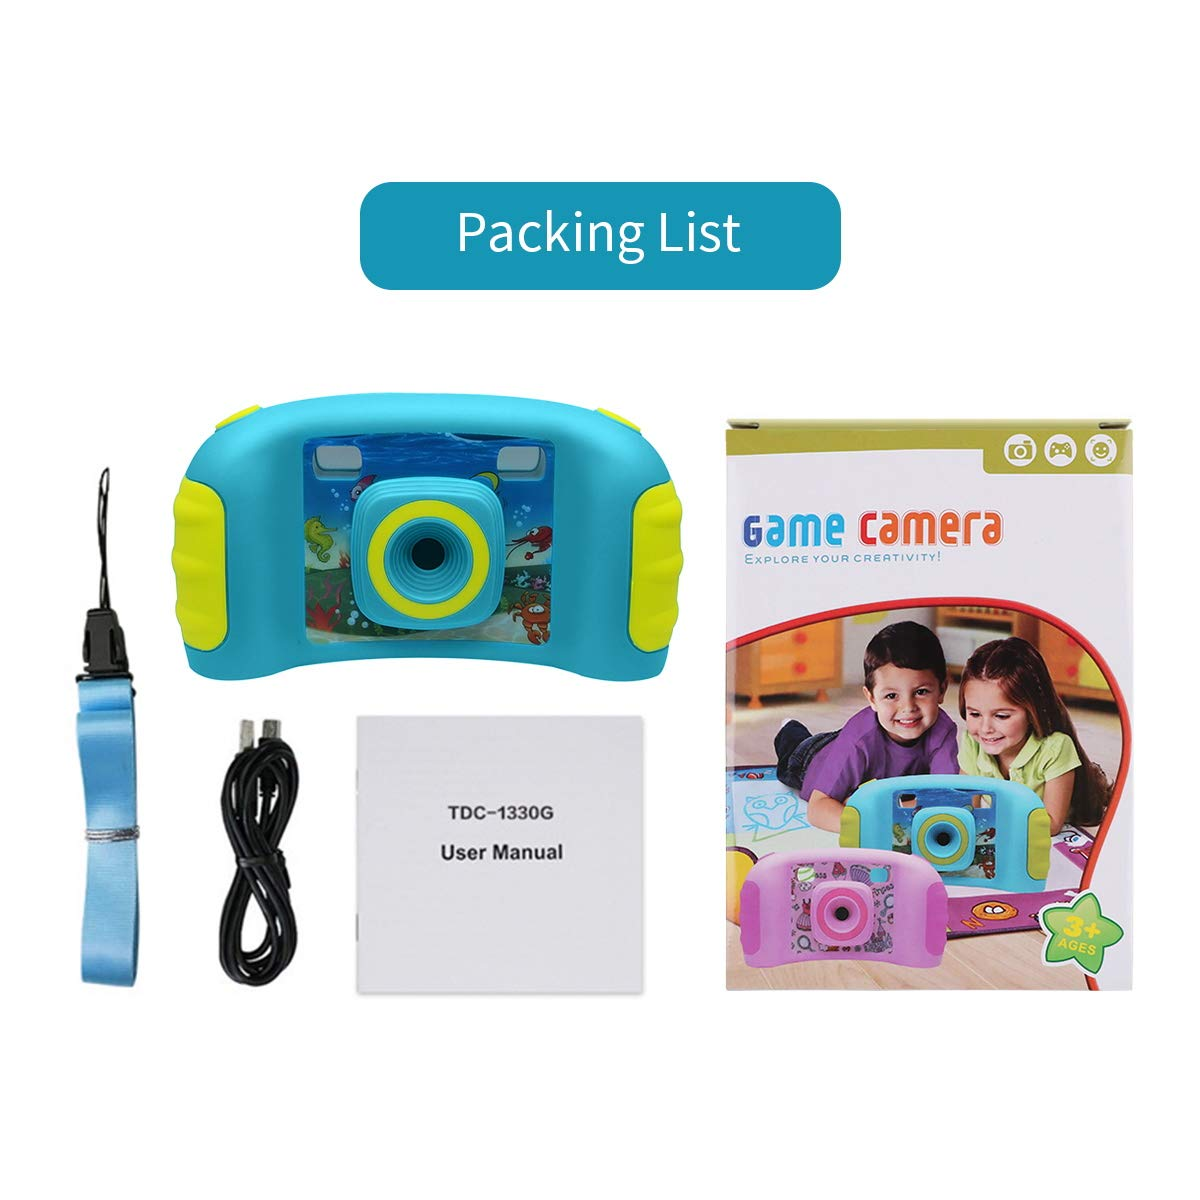 HankeRobotics Kids Digital Camera, with 8GB Micro SD Card, Kids Digital Photo/Video Camera with 4X Zoom, 1.7 Inch Screen Screen Action Camera Camcorder for Children Boys Girls Birthday Gift,Blue by HankeRobotics (Image #9)